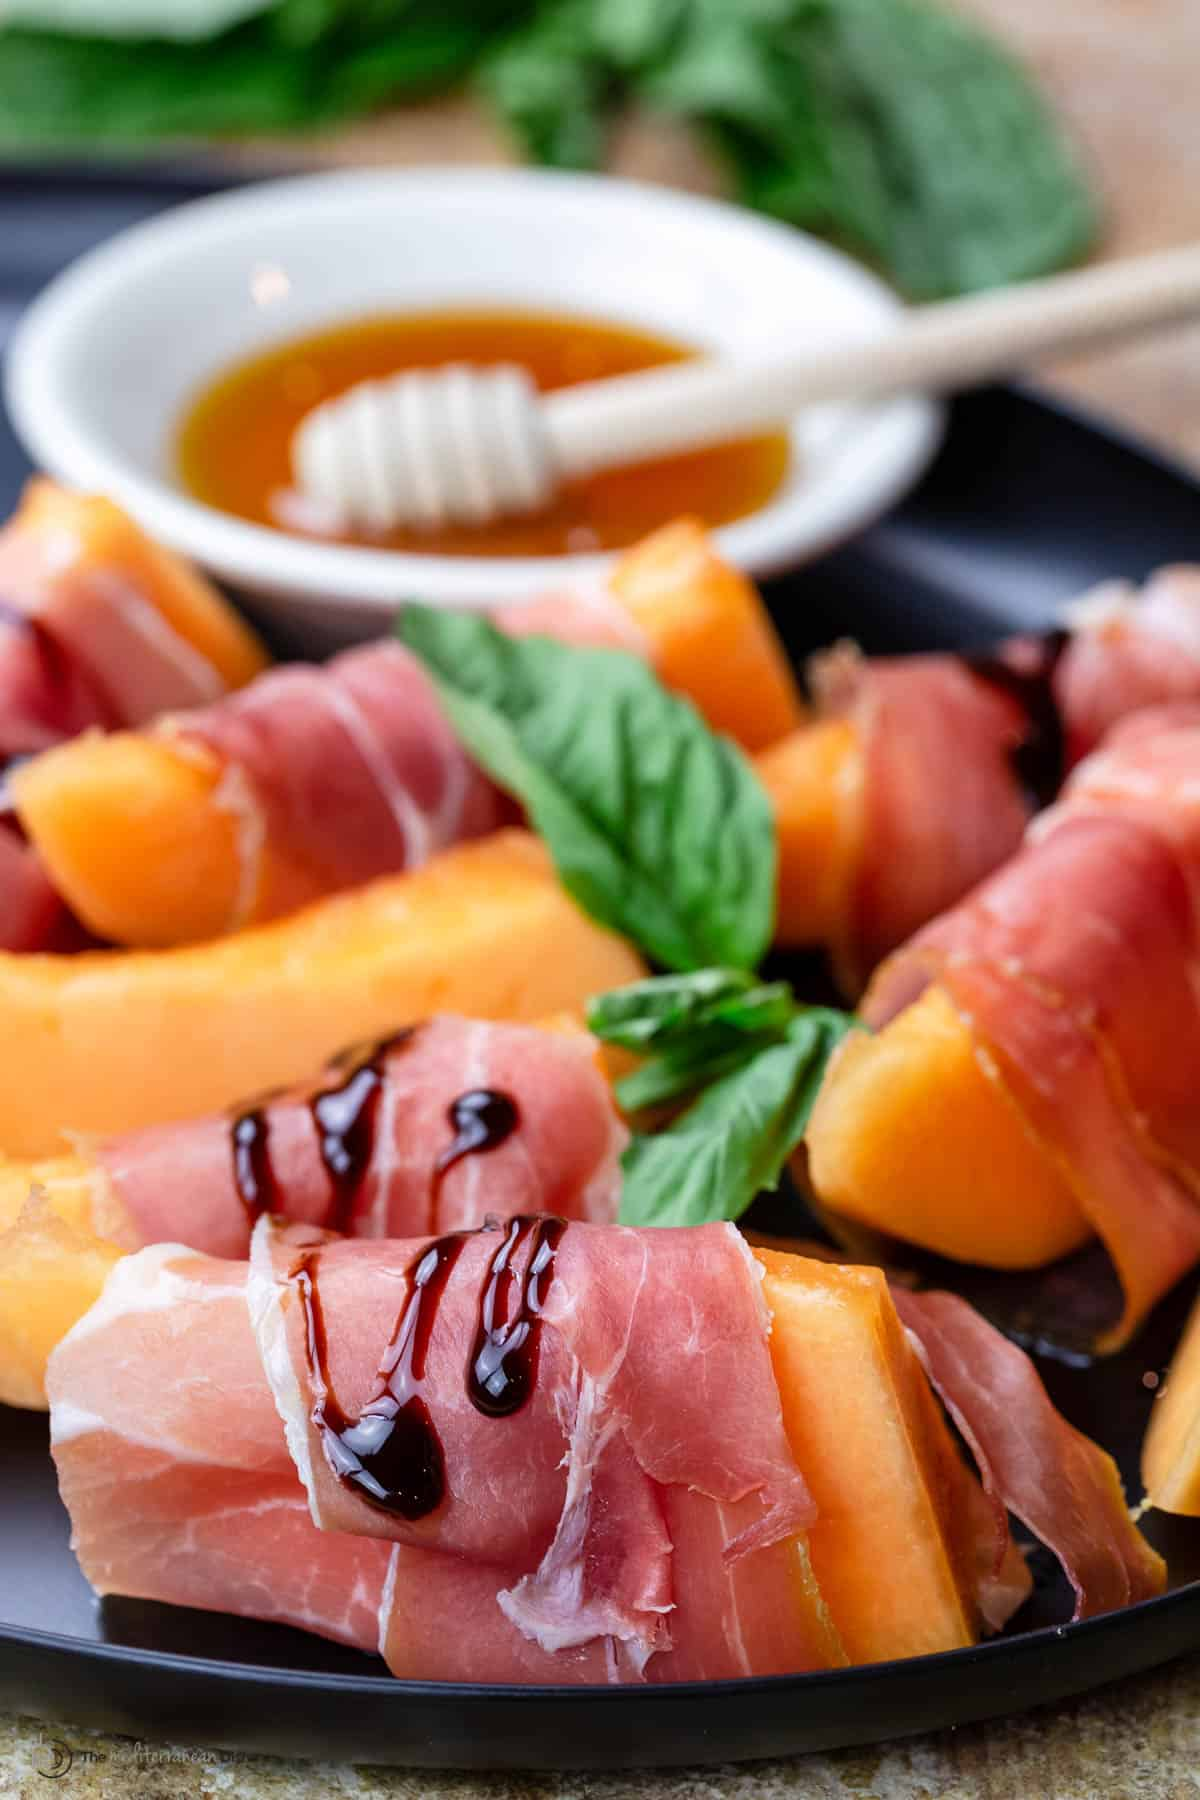 Prosciutto and melon served on a plate